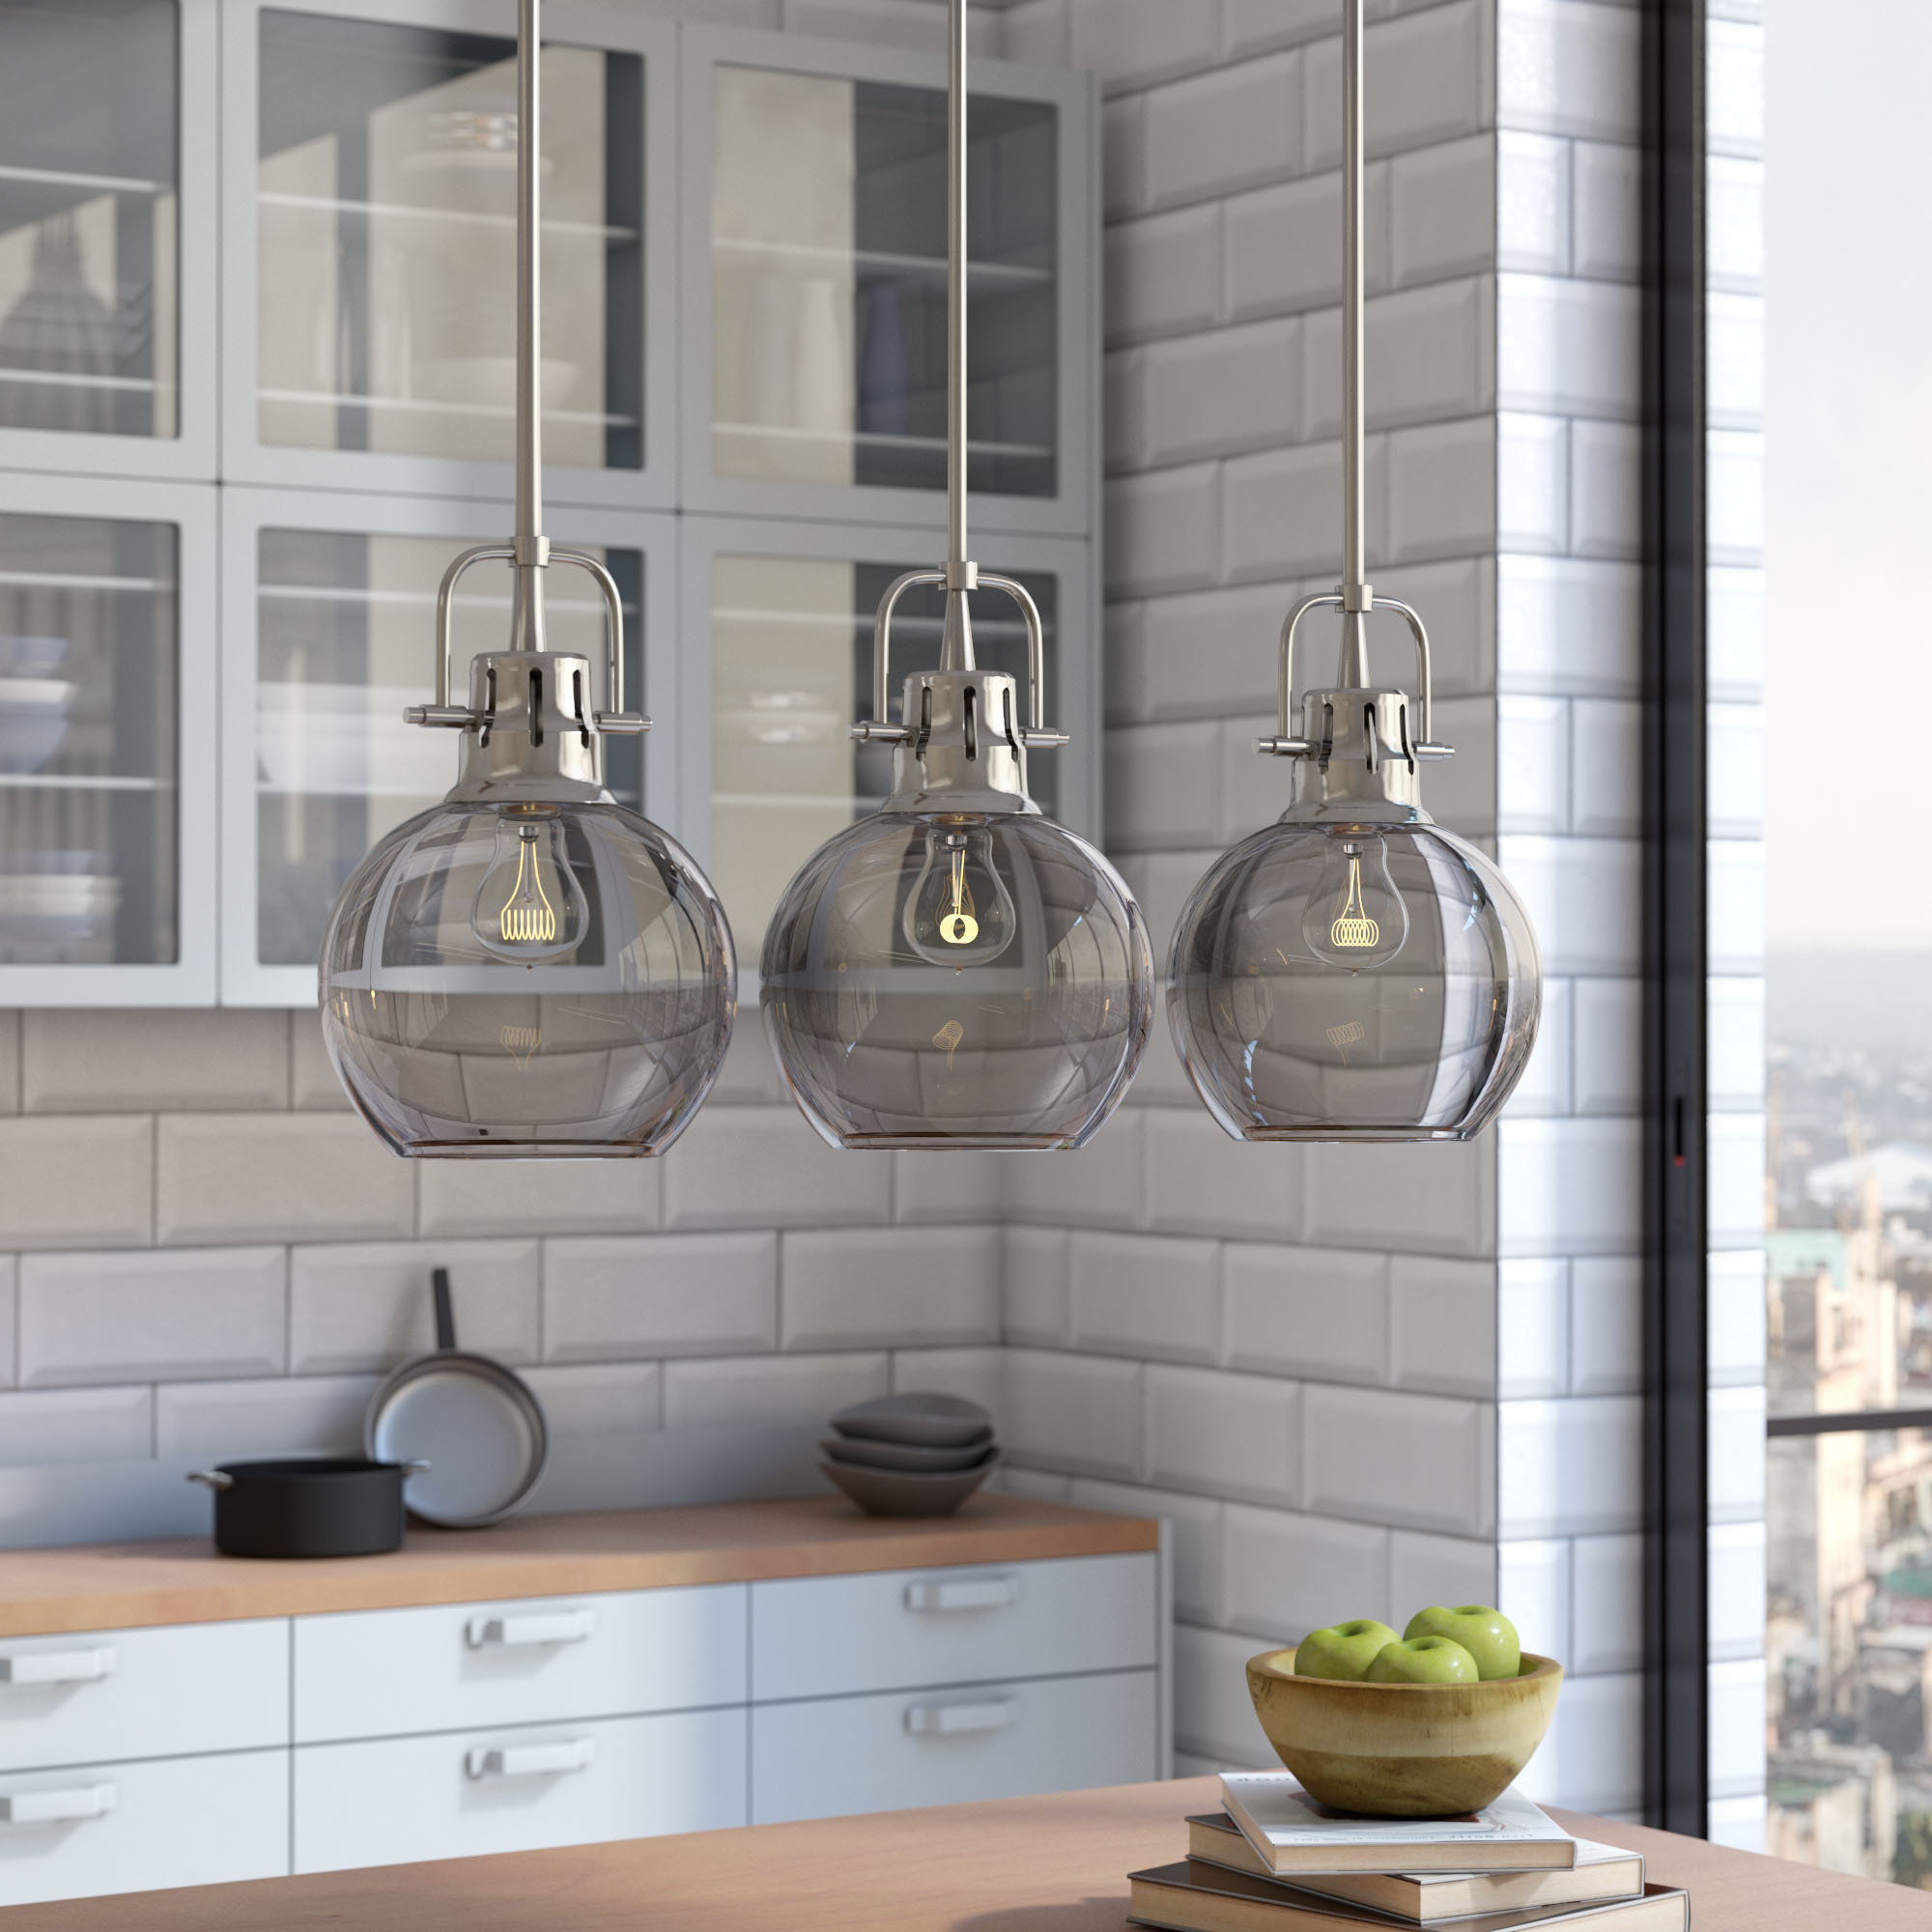 Hinerman 5 Light Kitchen Island Pendants In Widely Used Gold Kitchen Lighting (View 25 of 25)